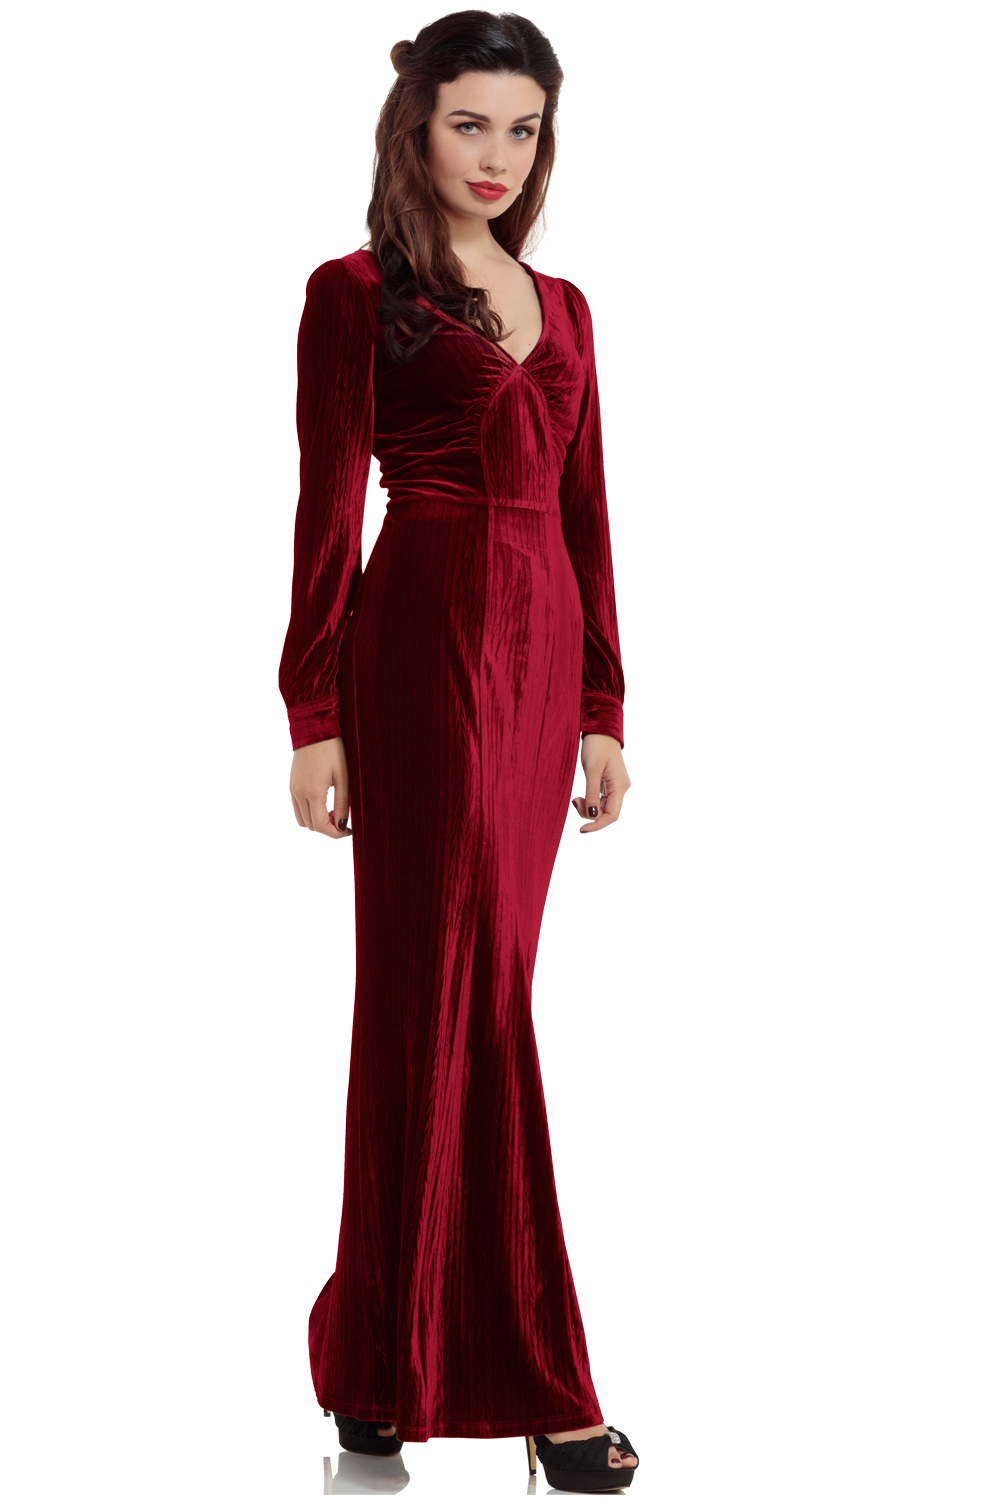 Voodoo Vixen Olive Red Maxi Dress